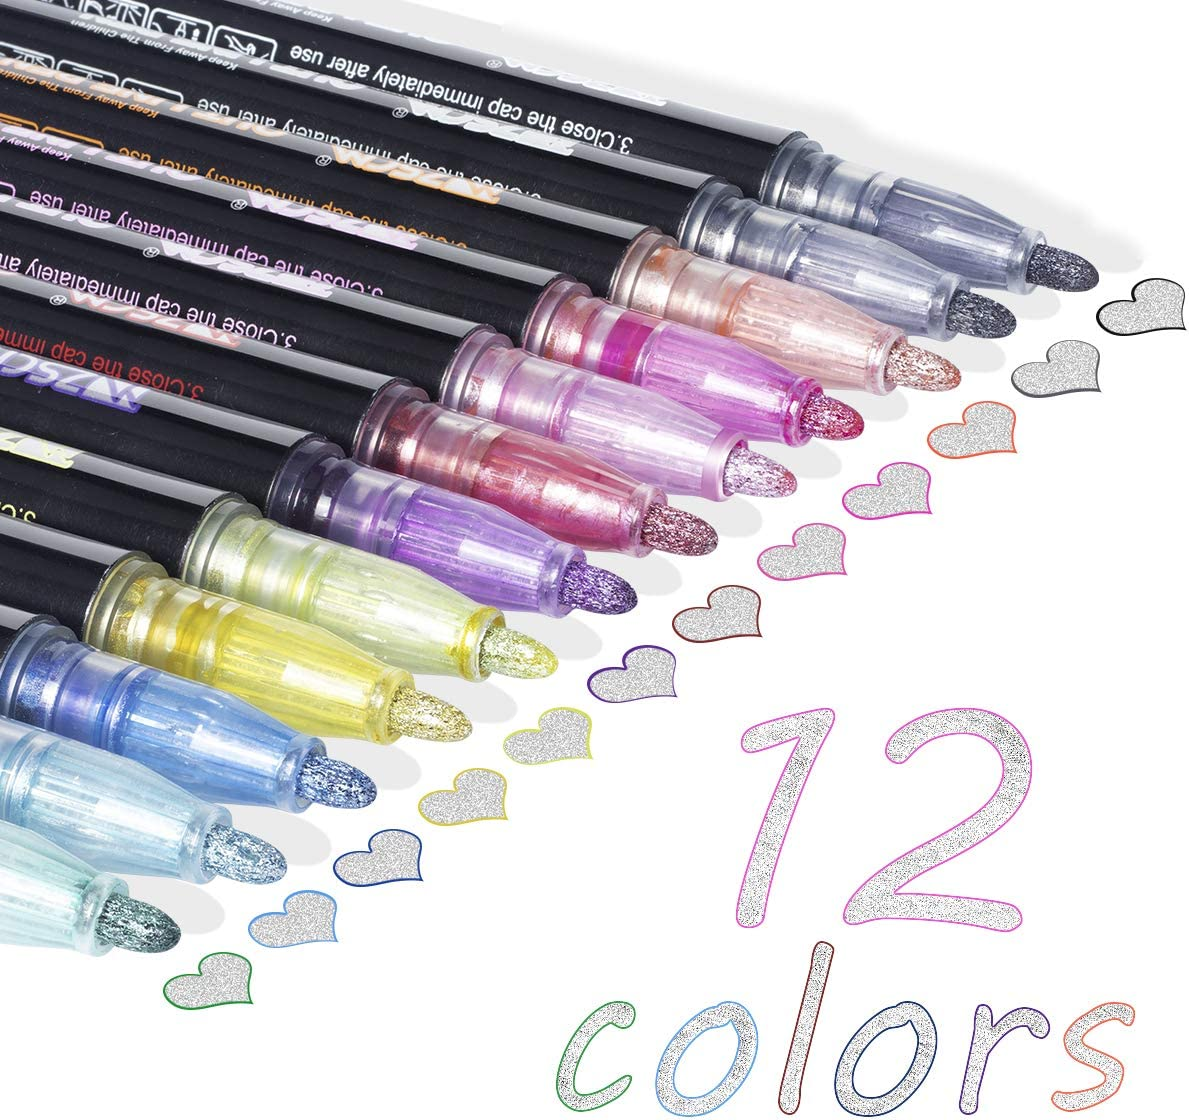 Set of 3 and Marker Cases Tin Pen 8 Inch Shimmer and Shine Pencil